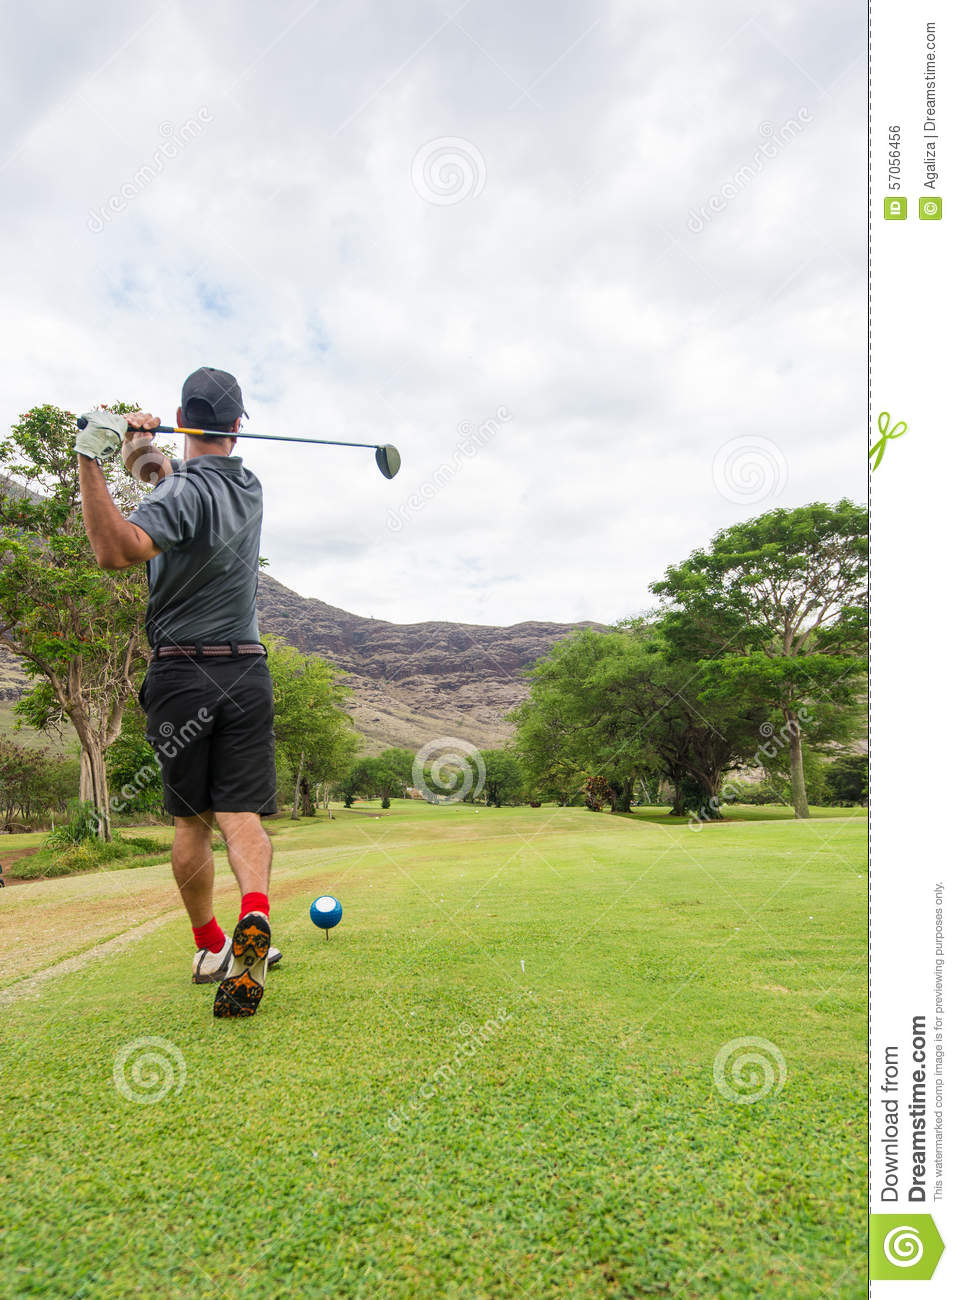 Golfer tees off from tee box to fairway